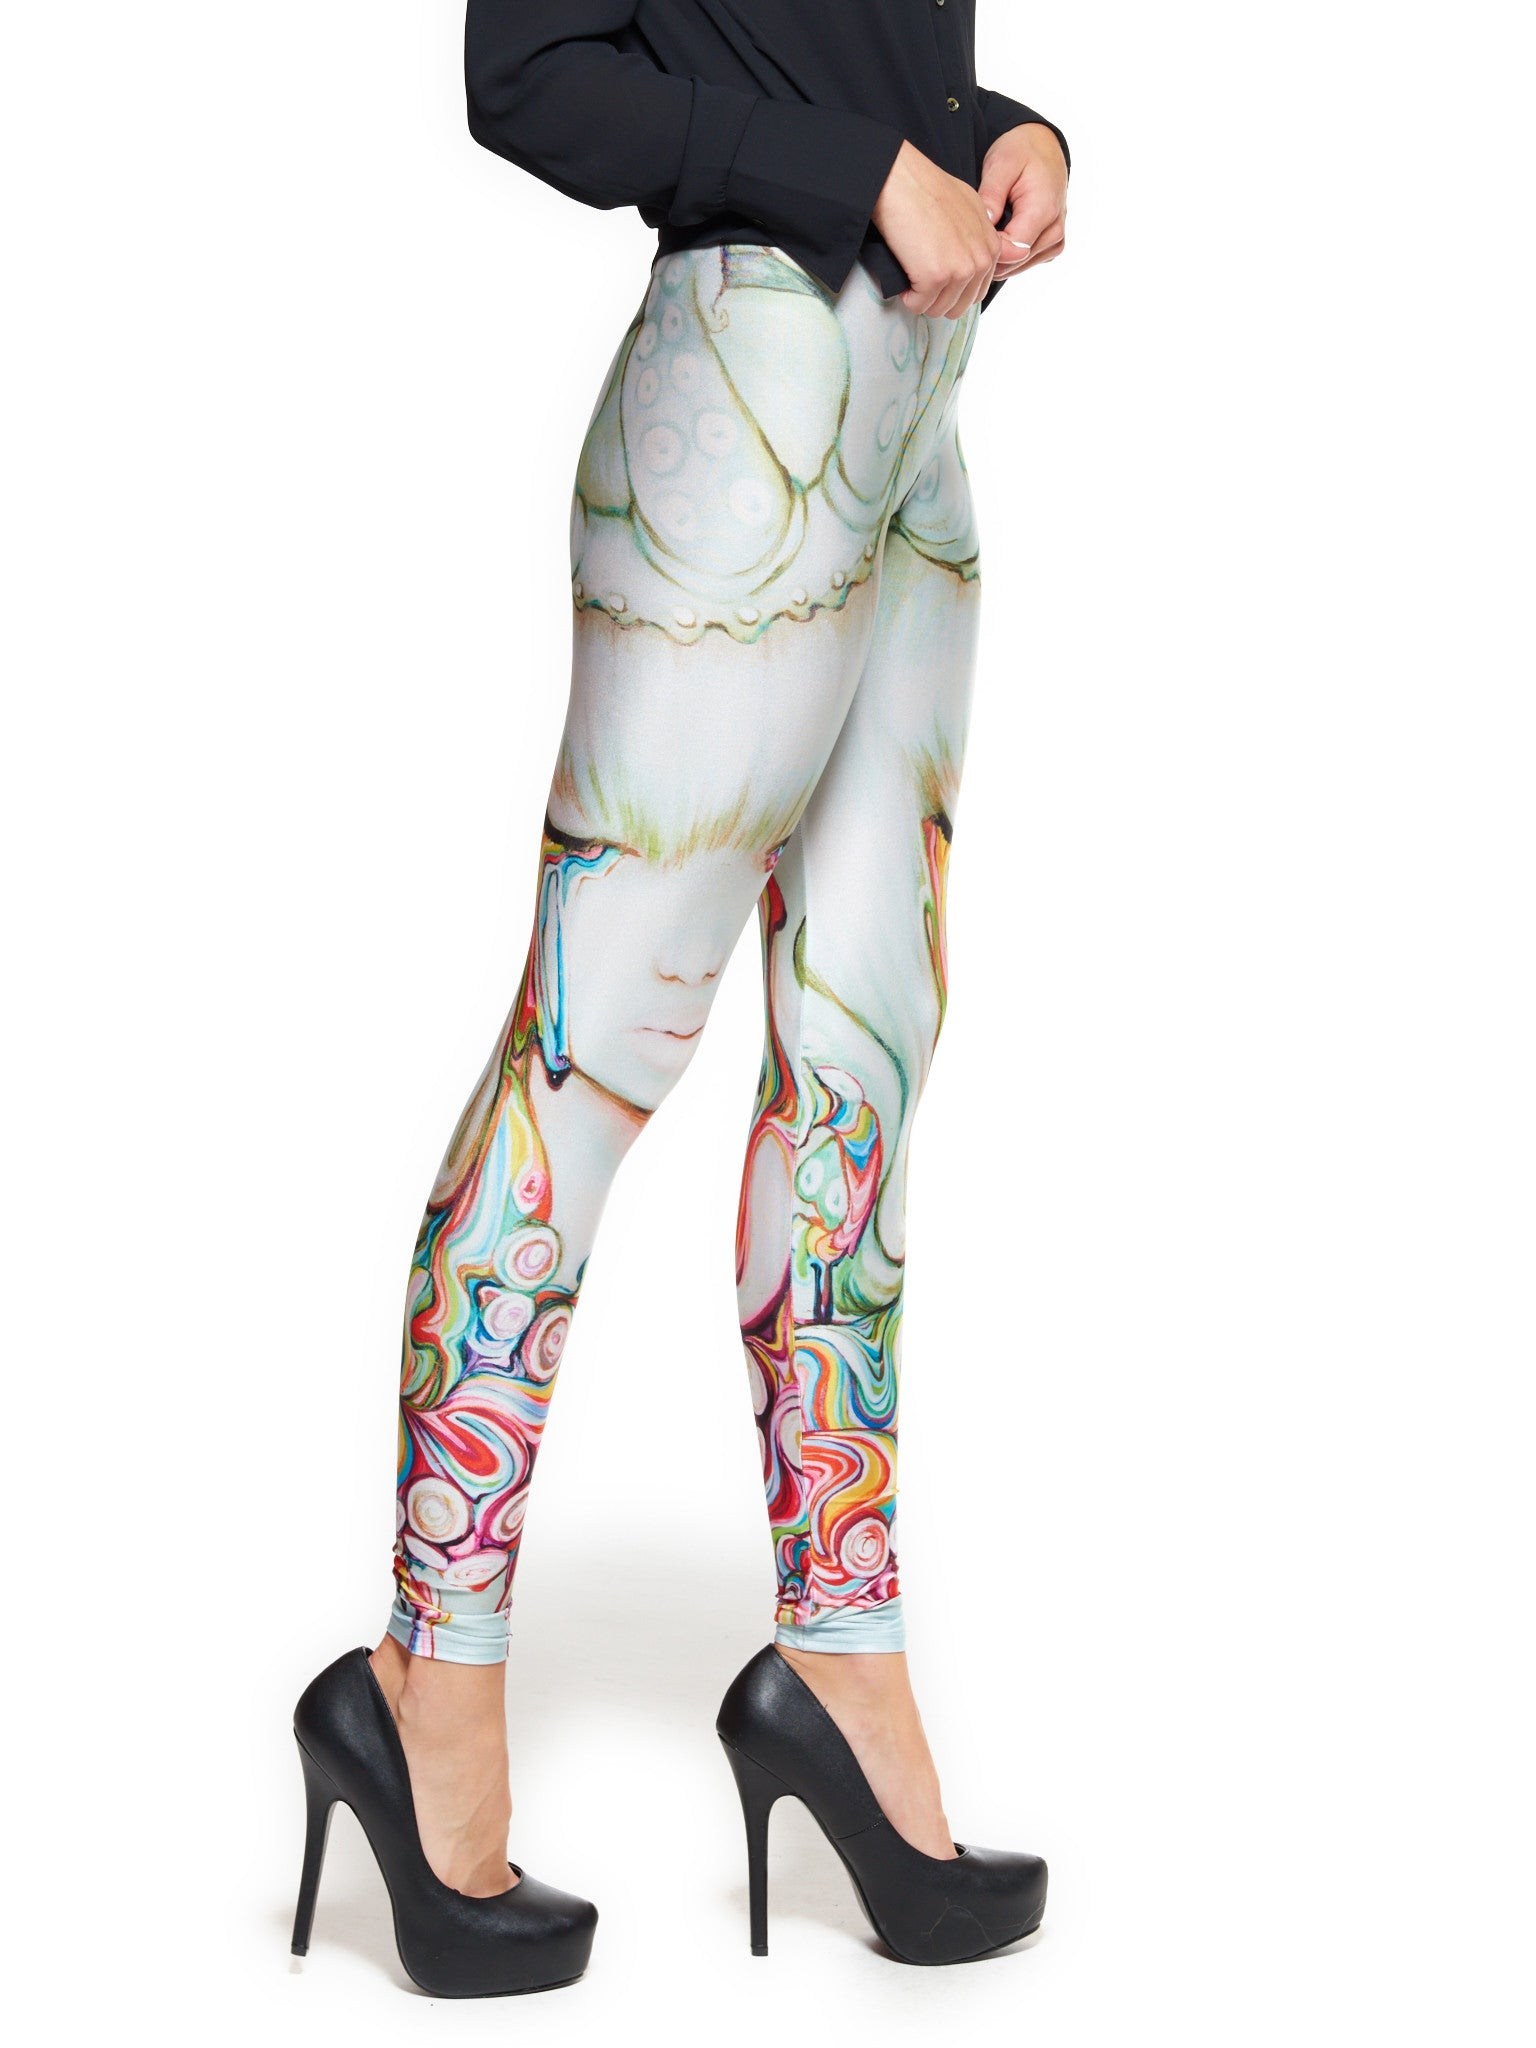 The Dream Melt Queen West Leggings - Nuvango  - 2